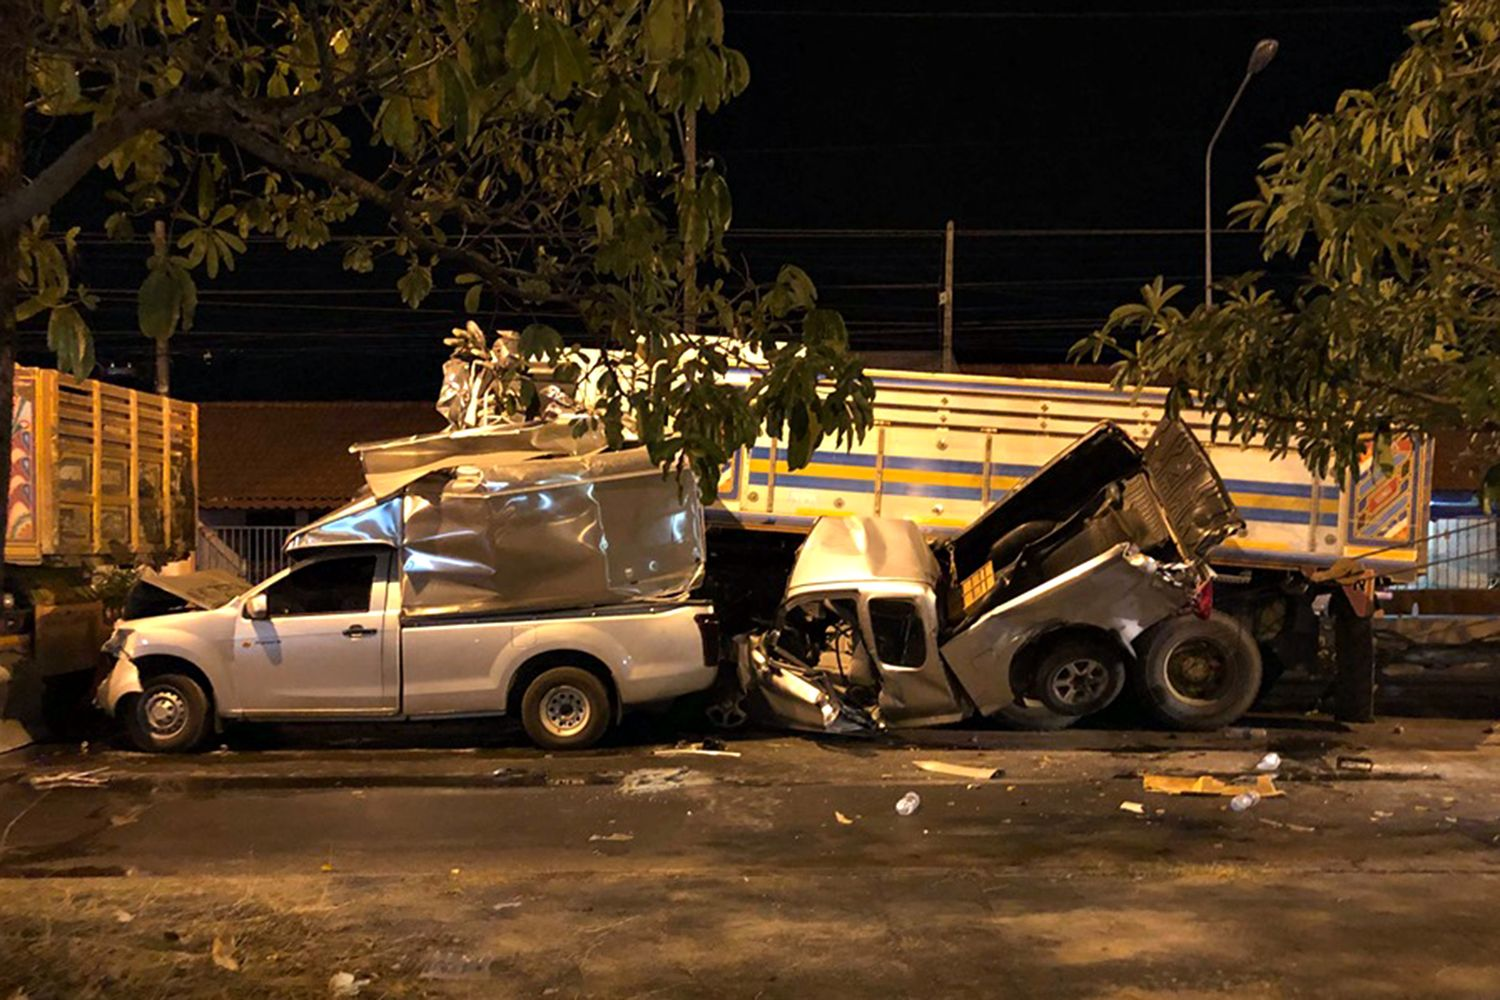 Eight vehicles were involved in this fatal pile-up at an intersection on the city bypass in Muang district, Prachin Buri, on Jan 30. (Photo by Manit Sanubboon)